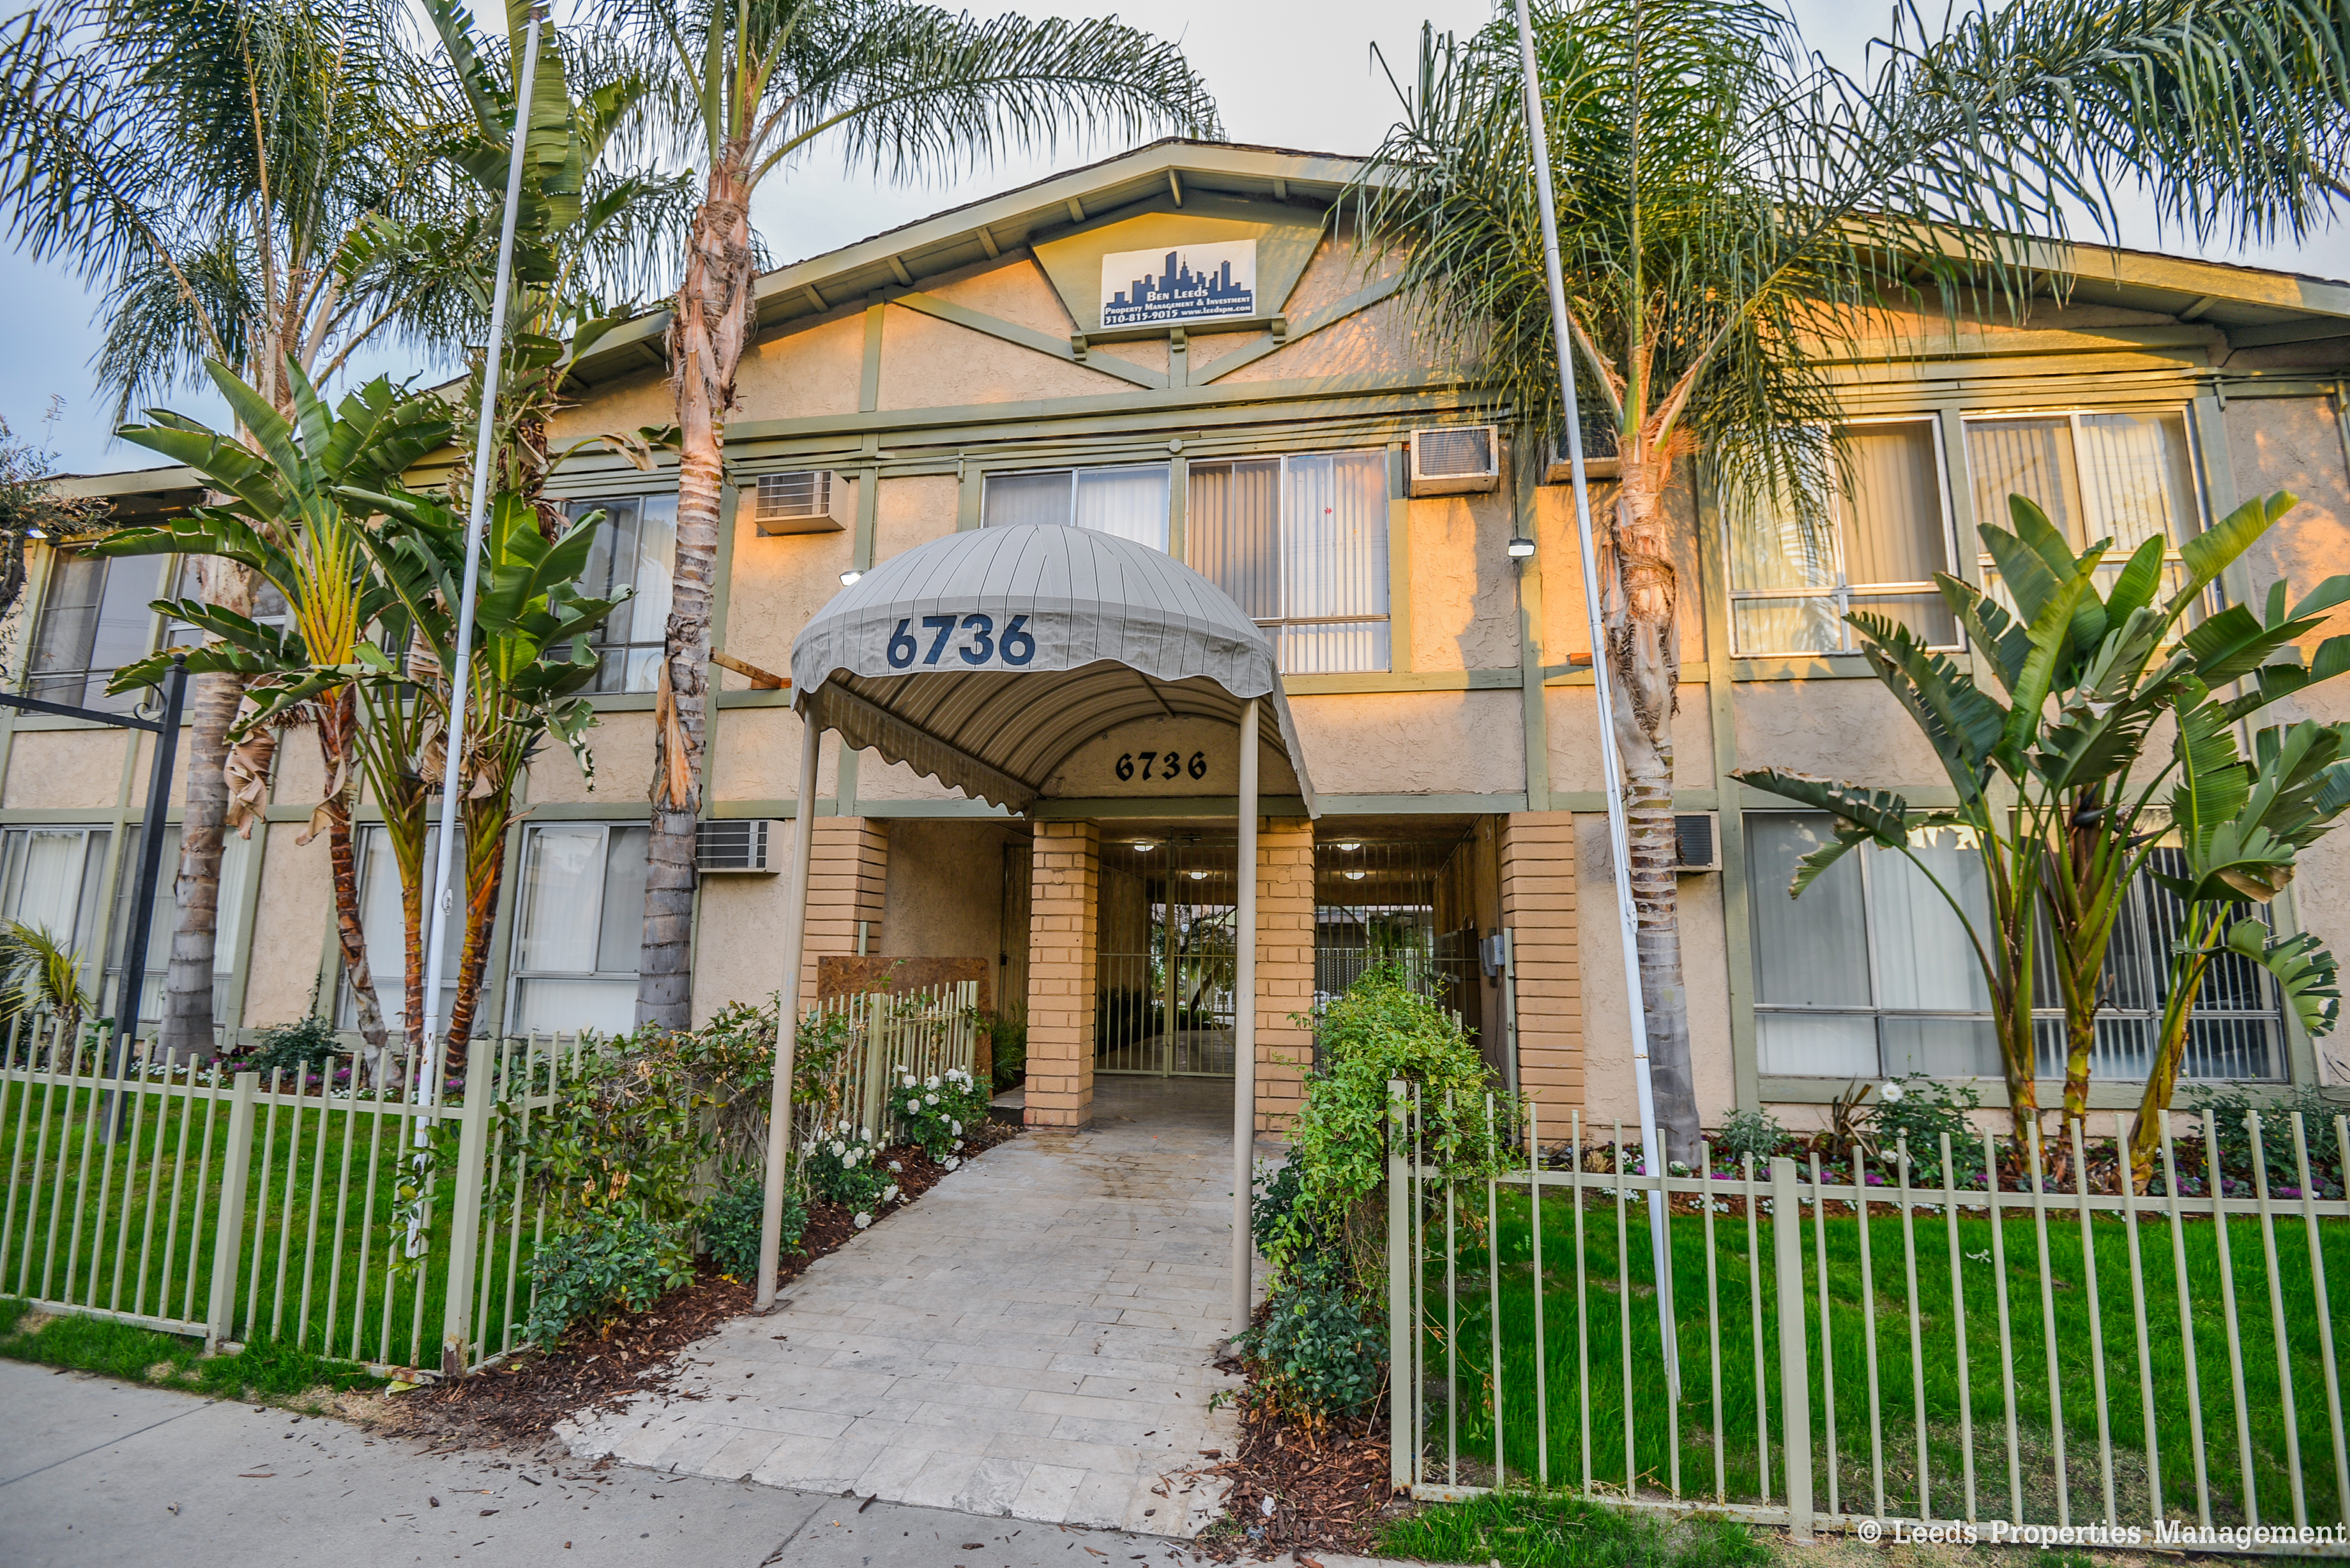 6736 Cleon Ave., North Hollywood, CA 91608